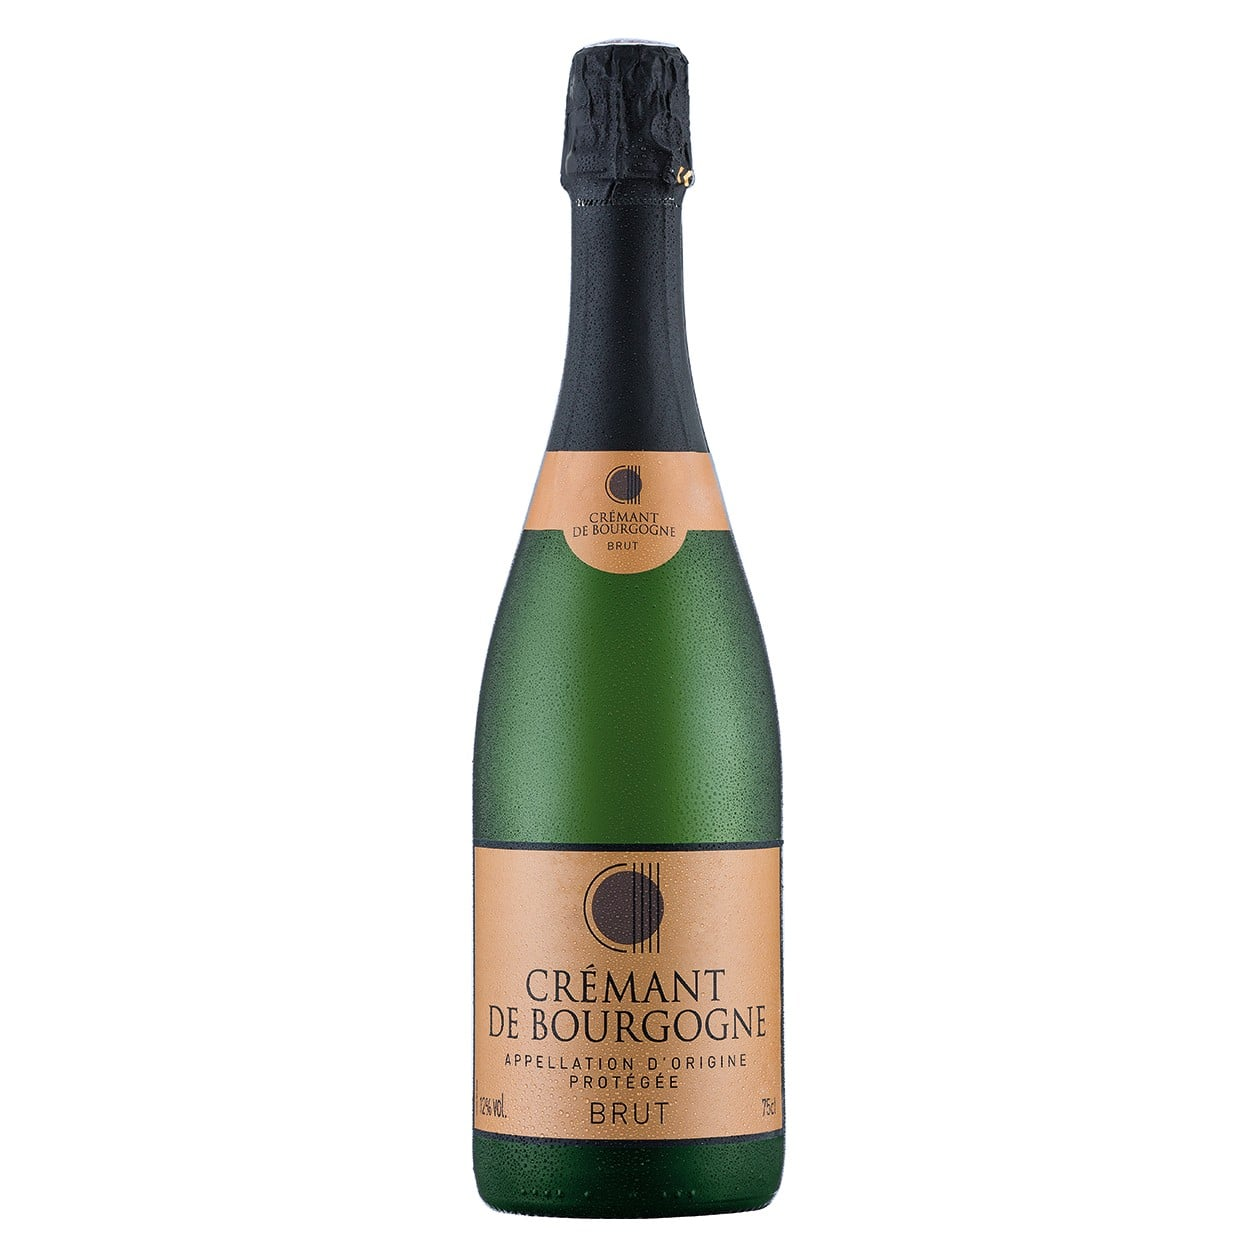 best cheap champagne best cheap wine from lidl popsugar food 28548